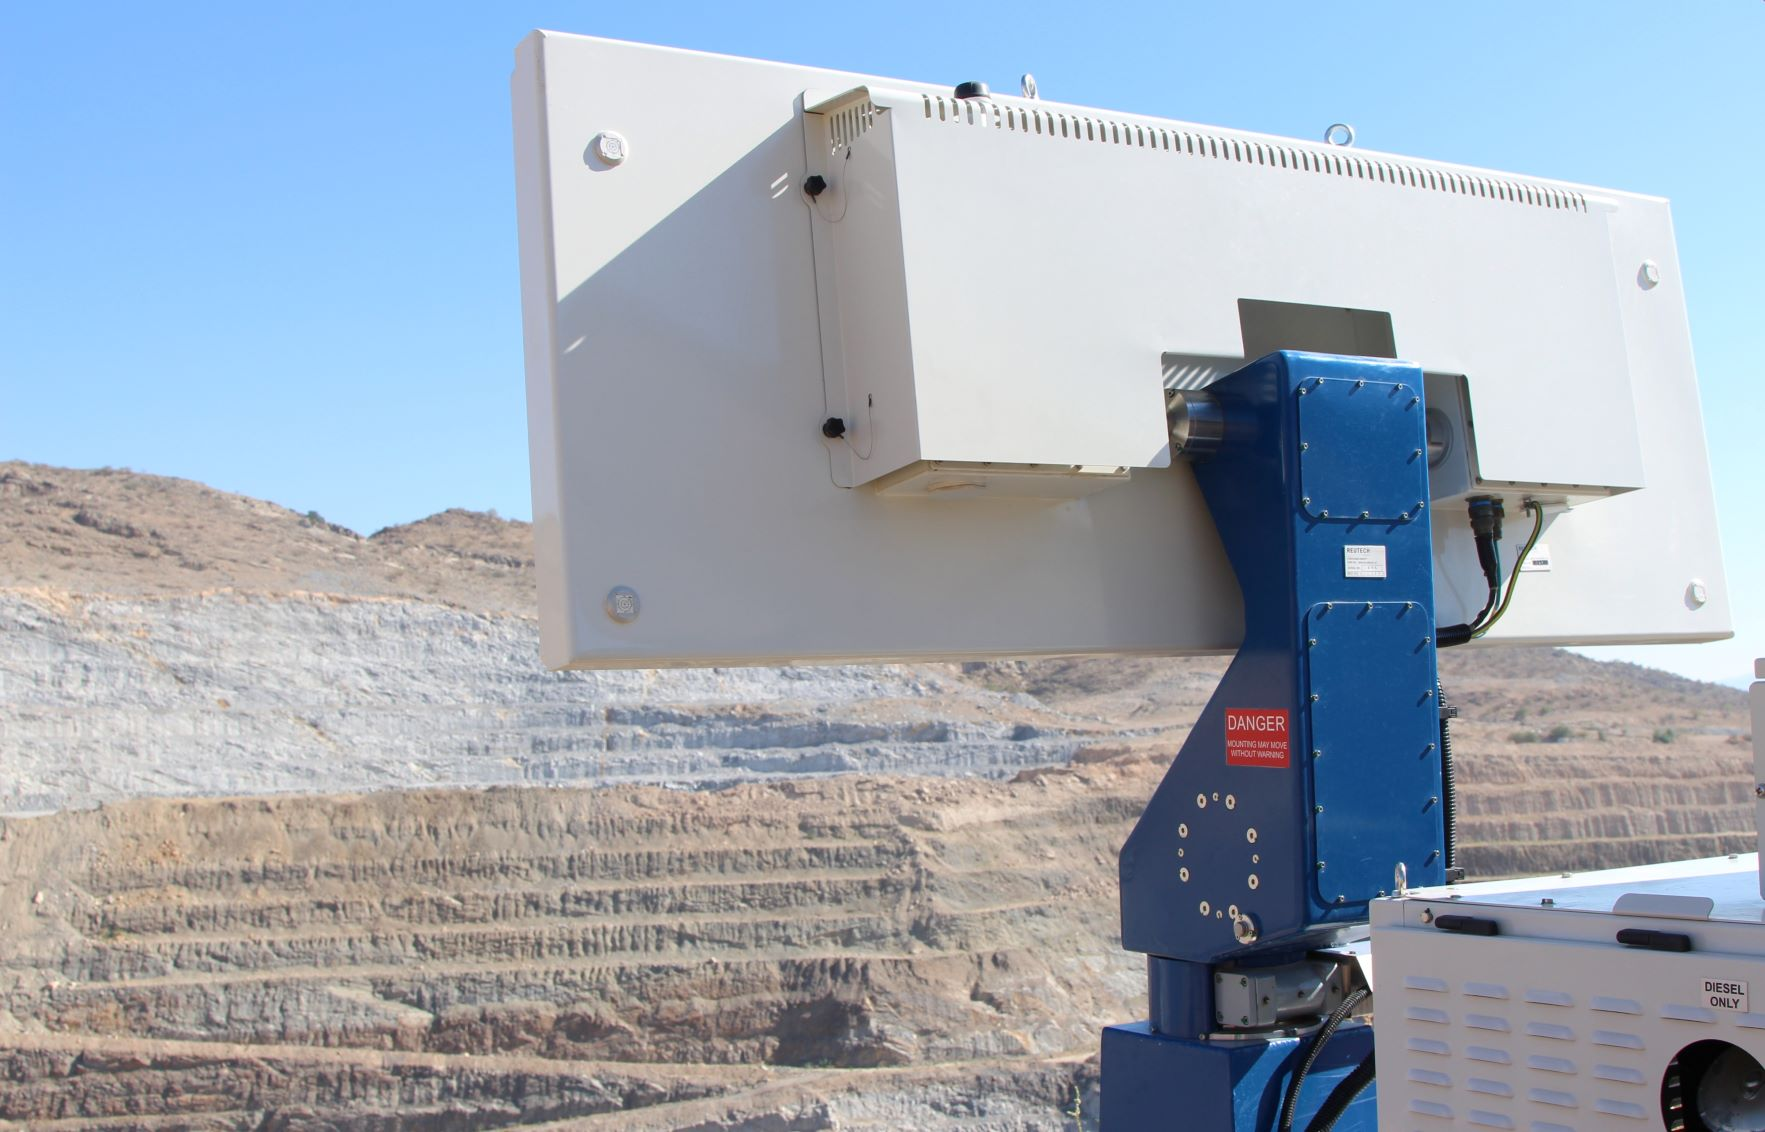 Reutech Mining launches fastest scanning slope monitoring radar